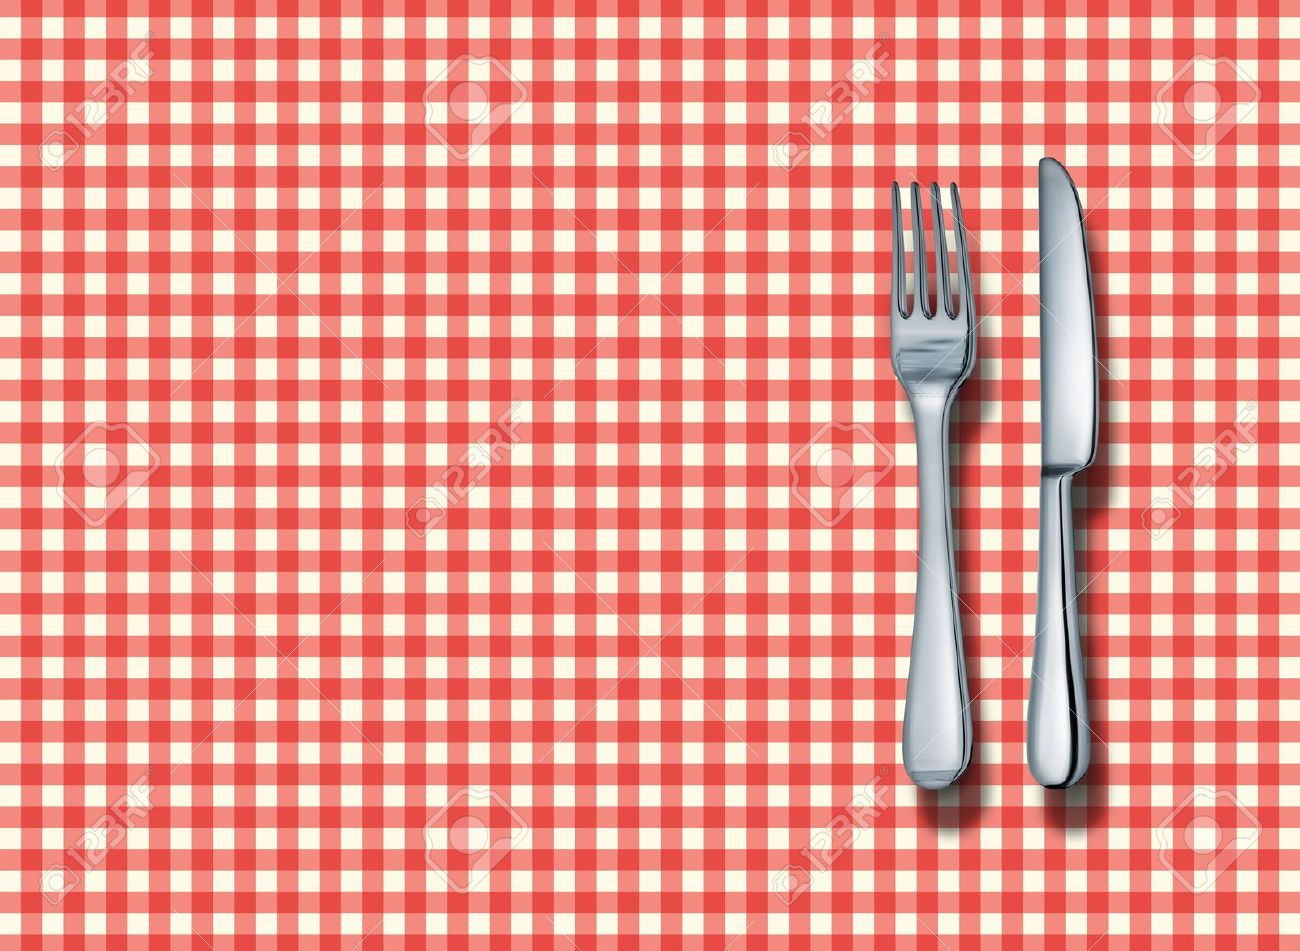 Superieur Family Restaurant Place Setting With A Classic Red And White Checkered  Table Cloth With A Silver